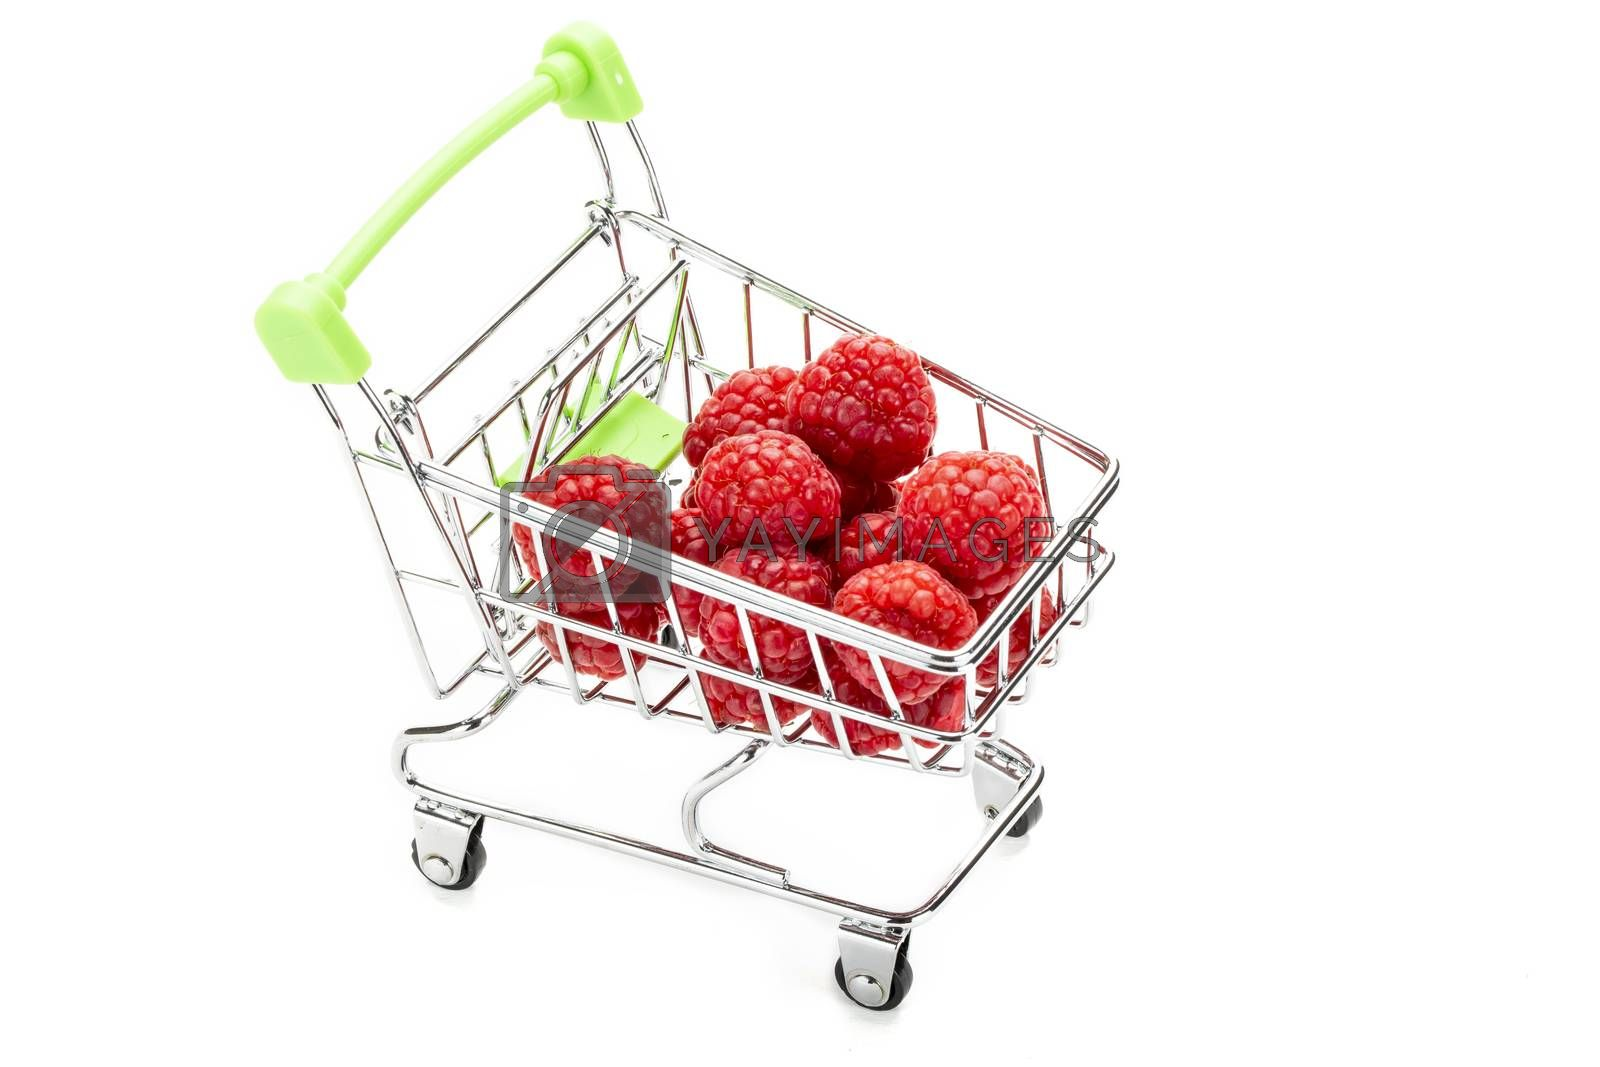 Fresh raspberries in miniature shopping cart. Isolated on white background.